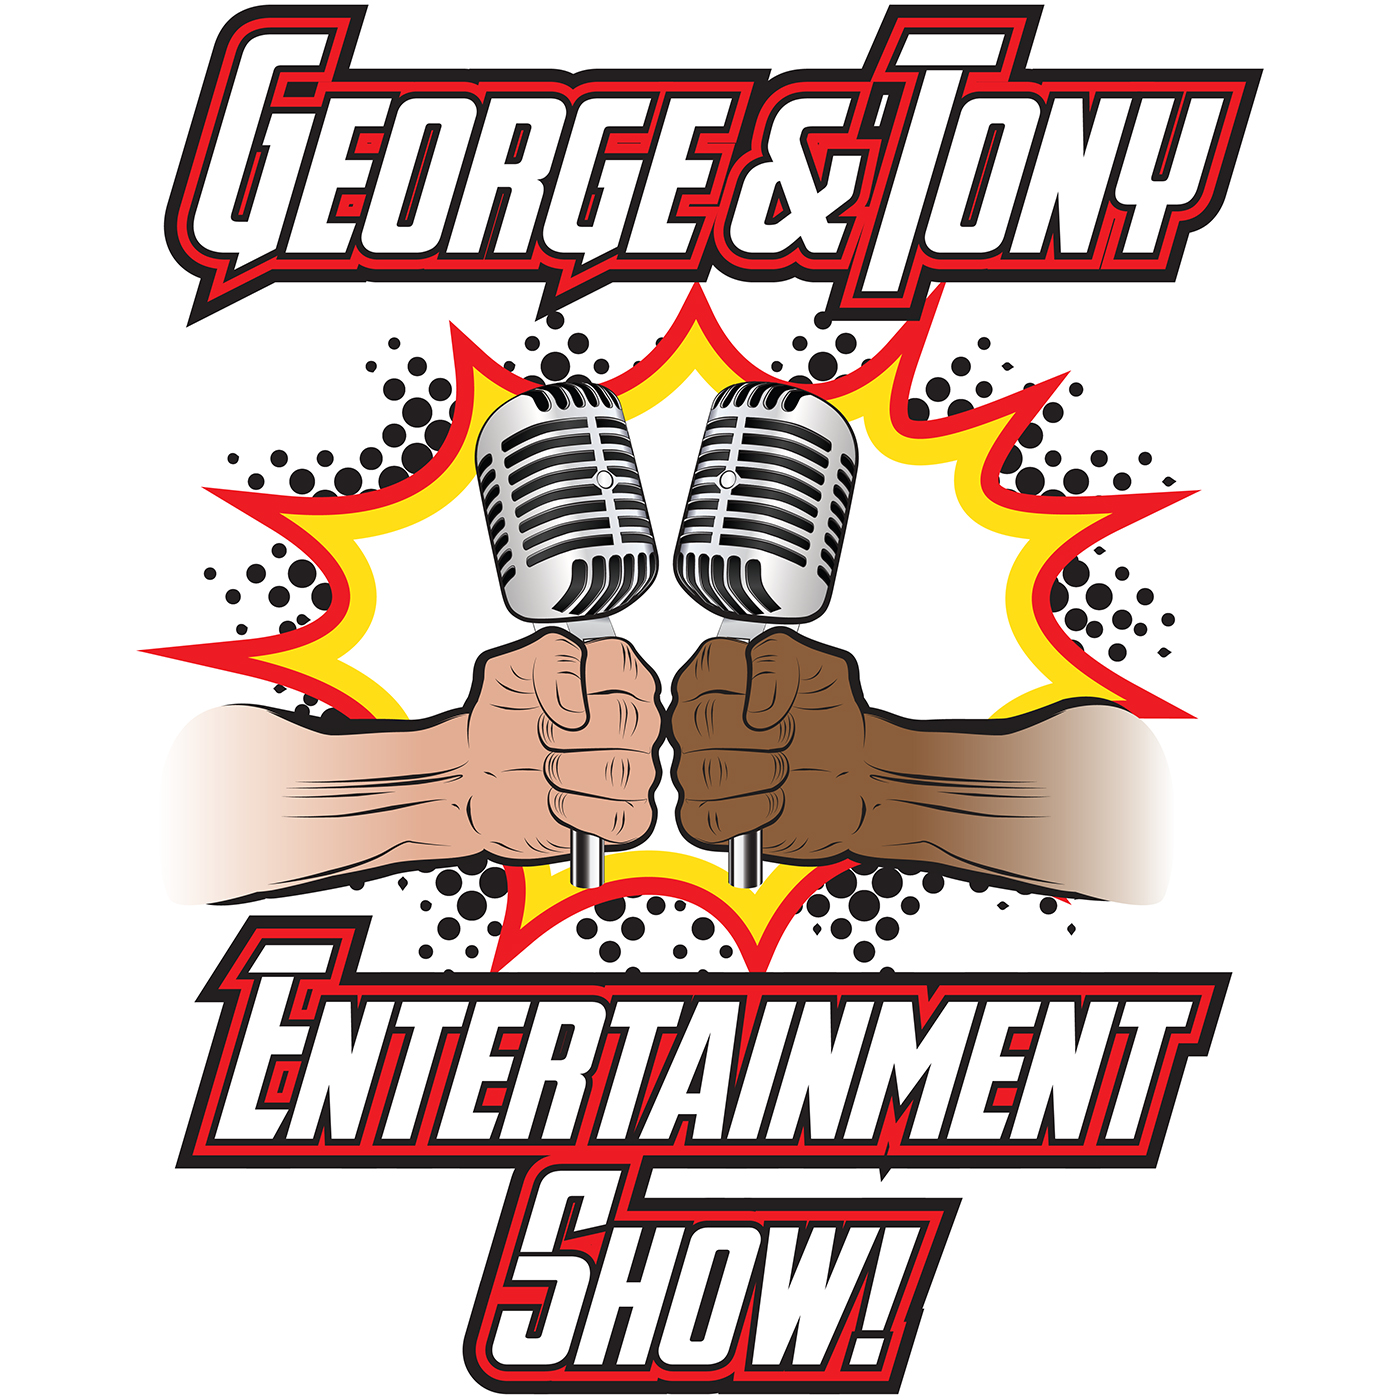 George and Tony Entertainment Show #68